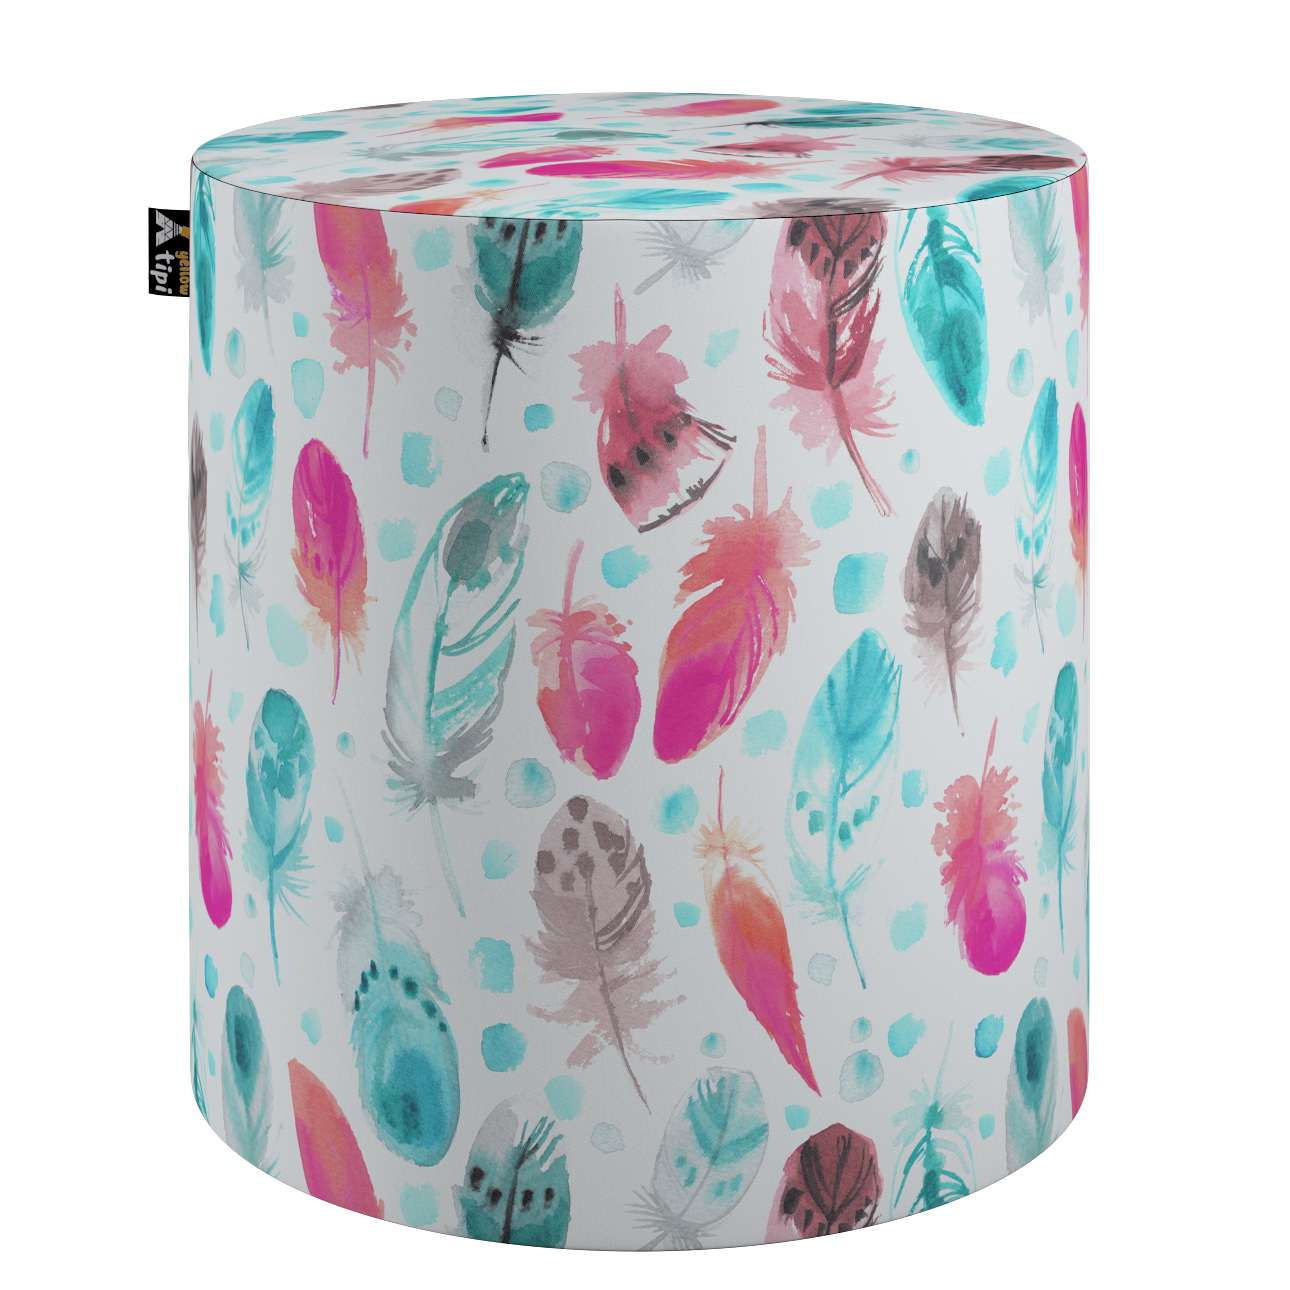 Bobby pouf in collection Magic Collection, fabric: 500-17